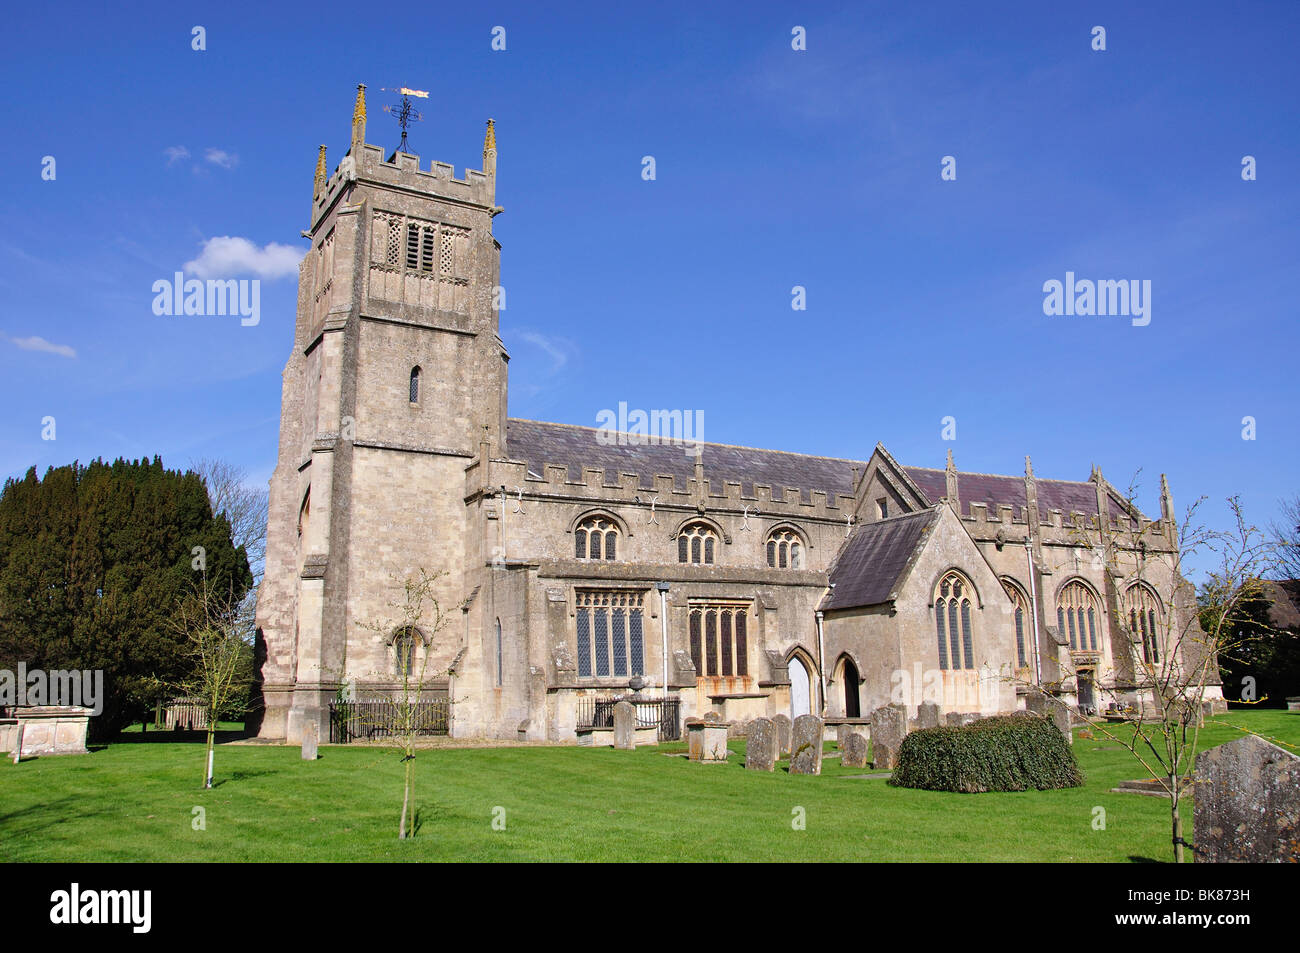 The Parish Church of St.Michael and All Angels, Melksham, Wiltshire, England, United Kingdom Stock Photo